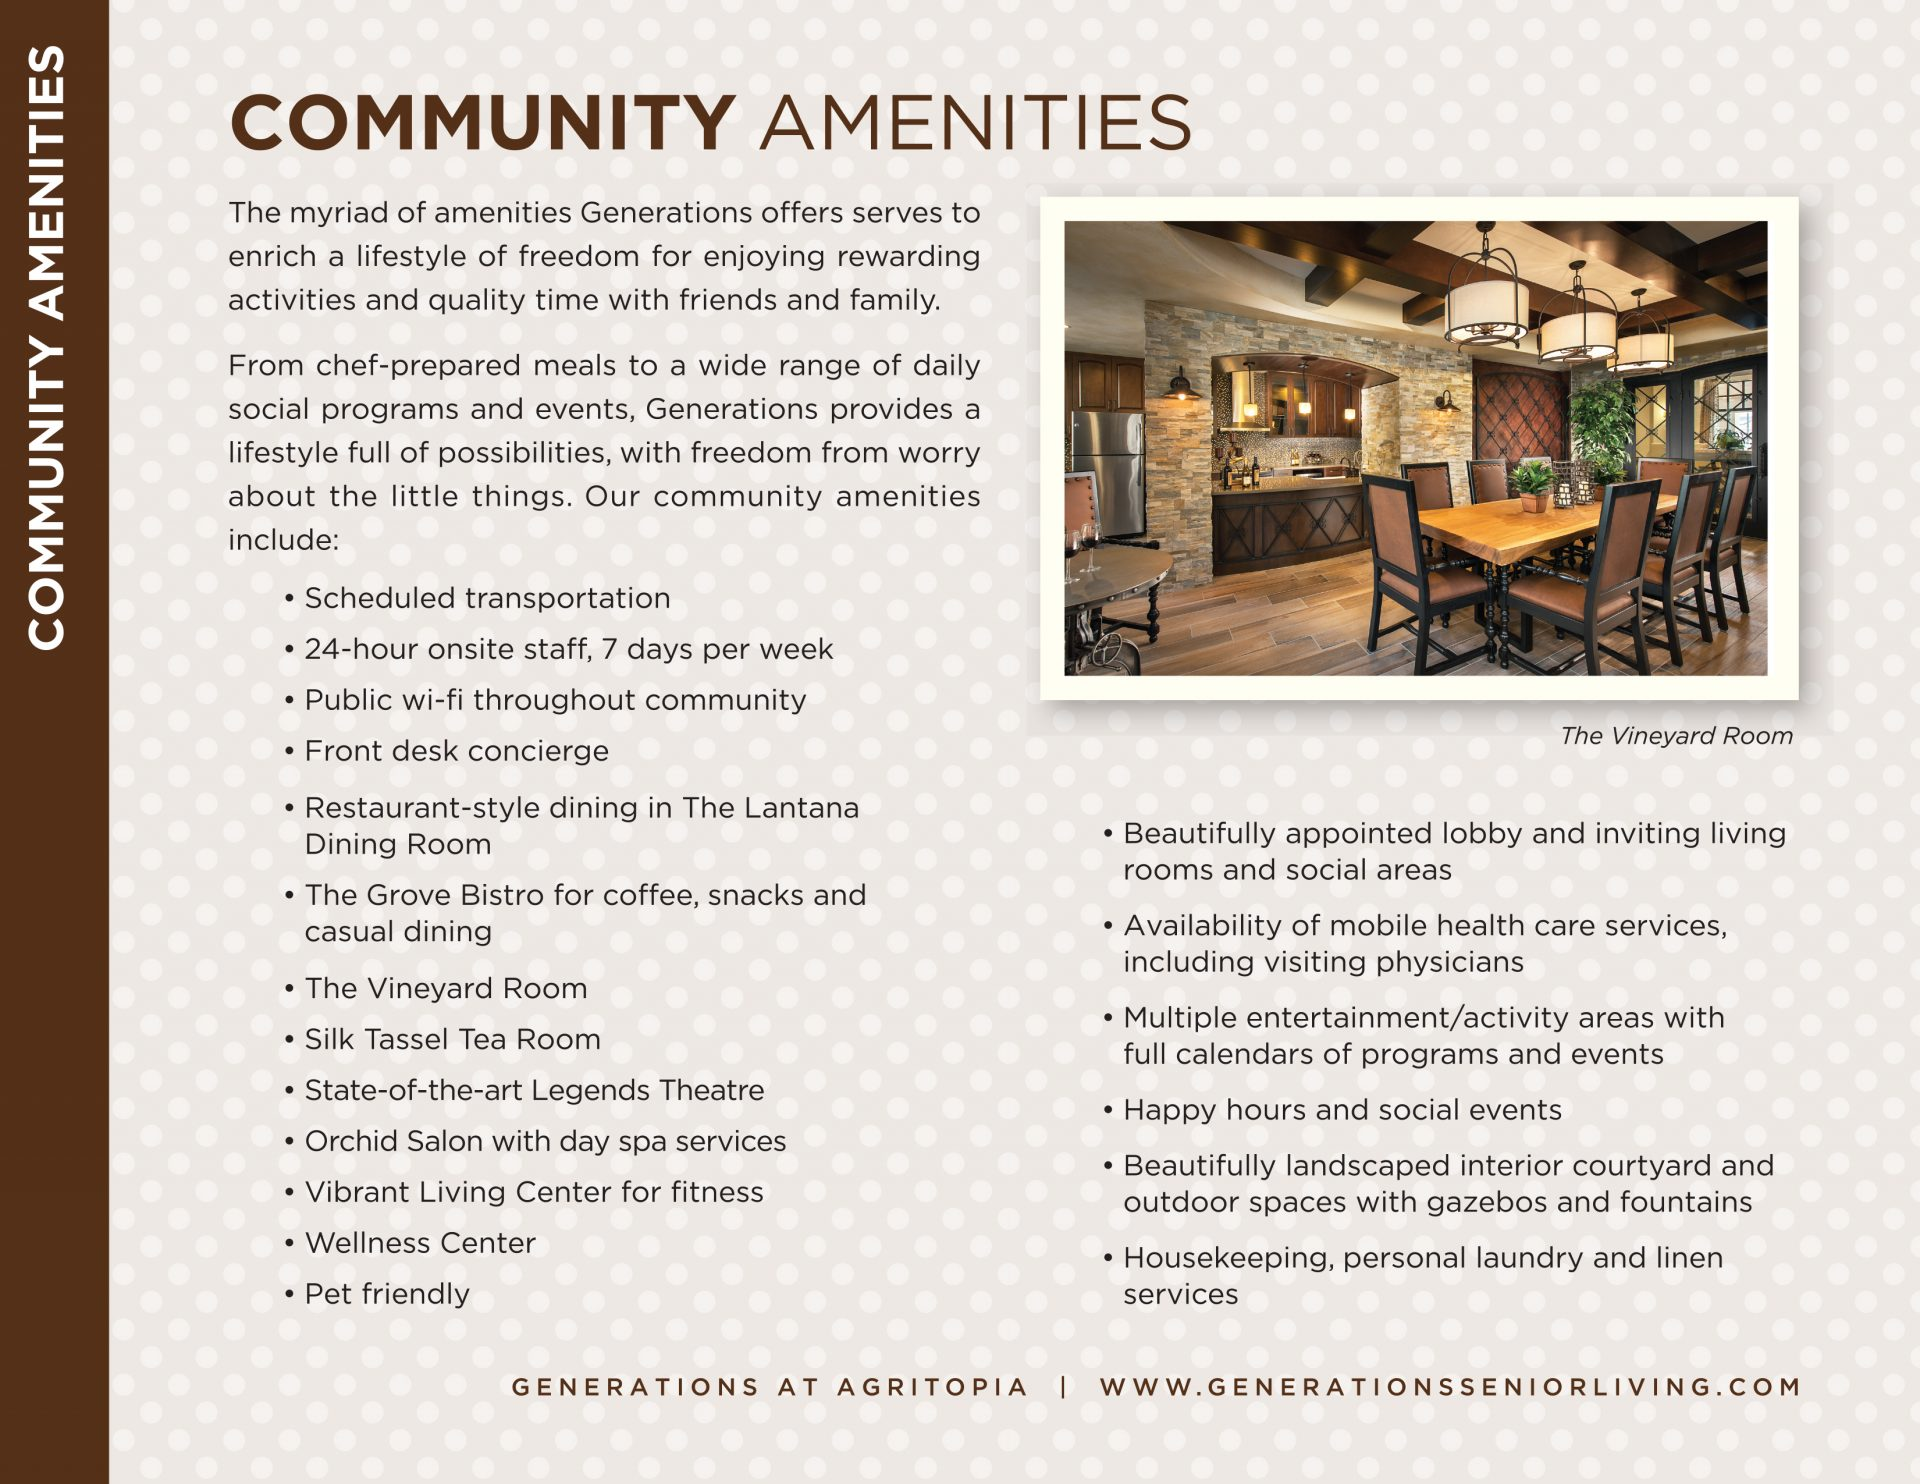 Community Amenities insert, Generations at Agritopia, Lori Pasulka